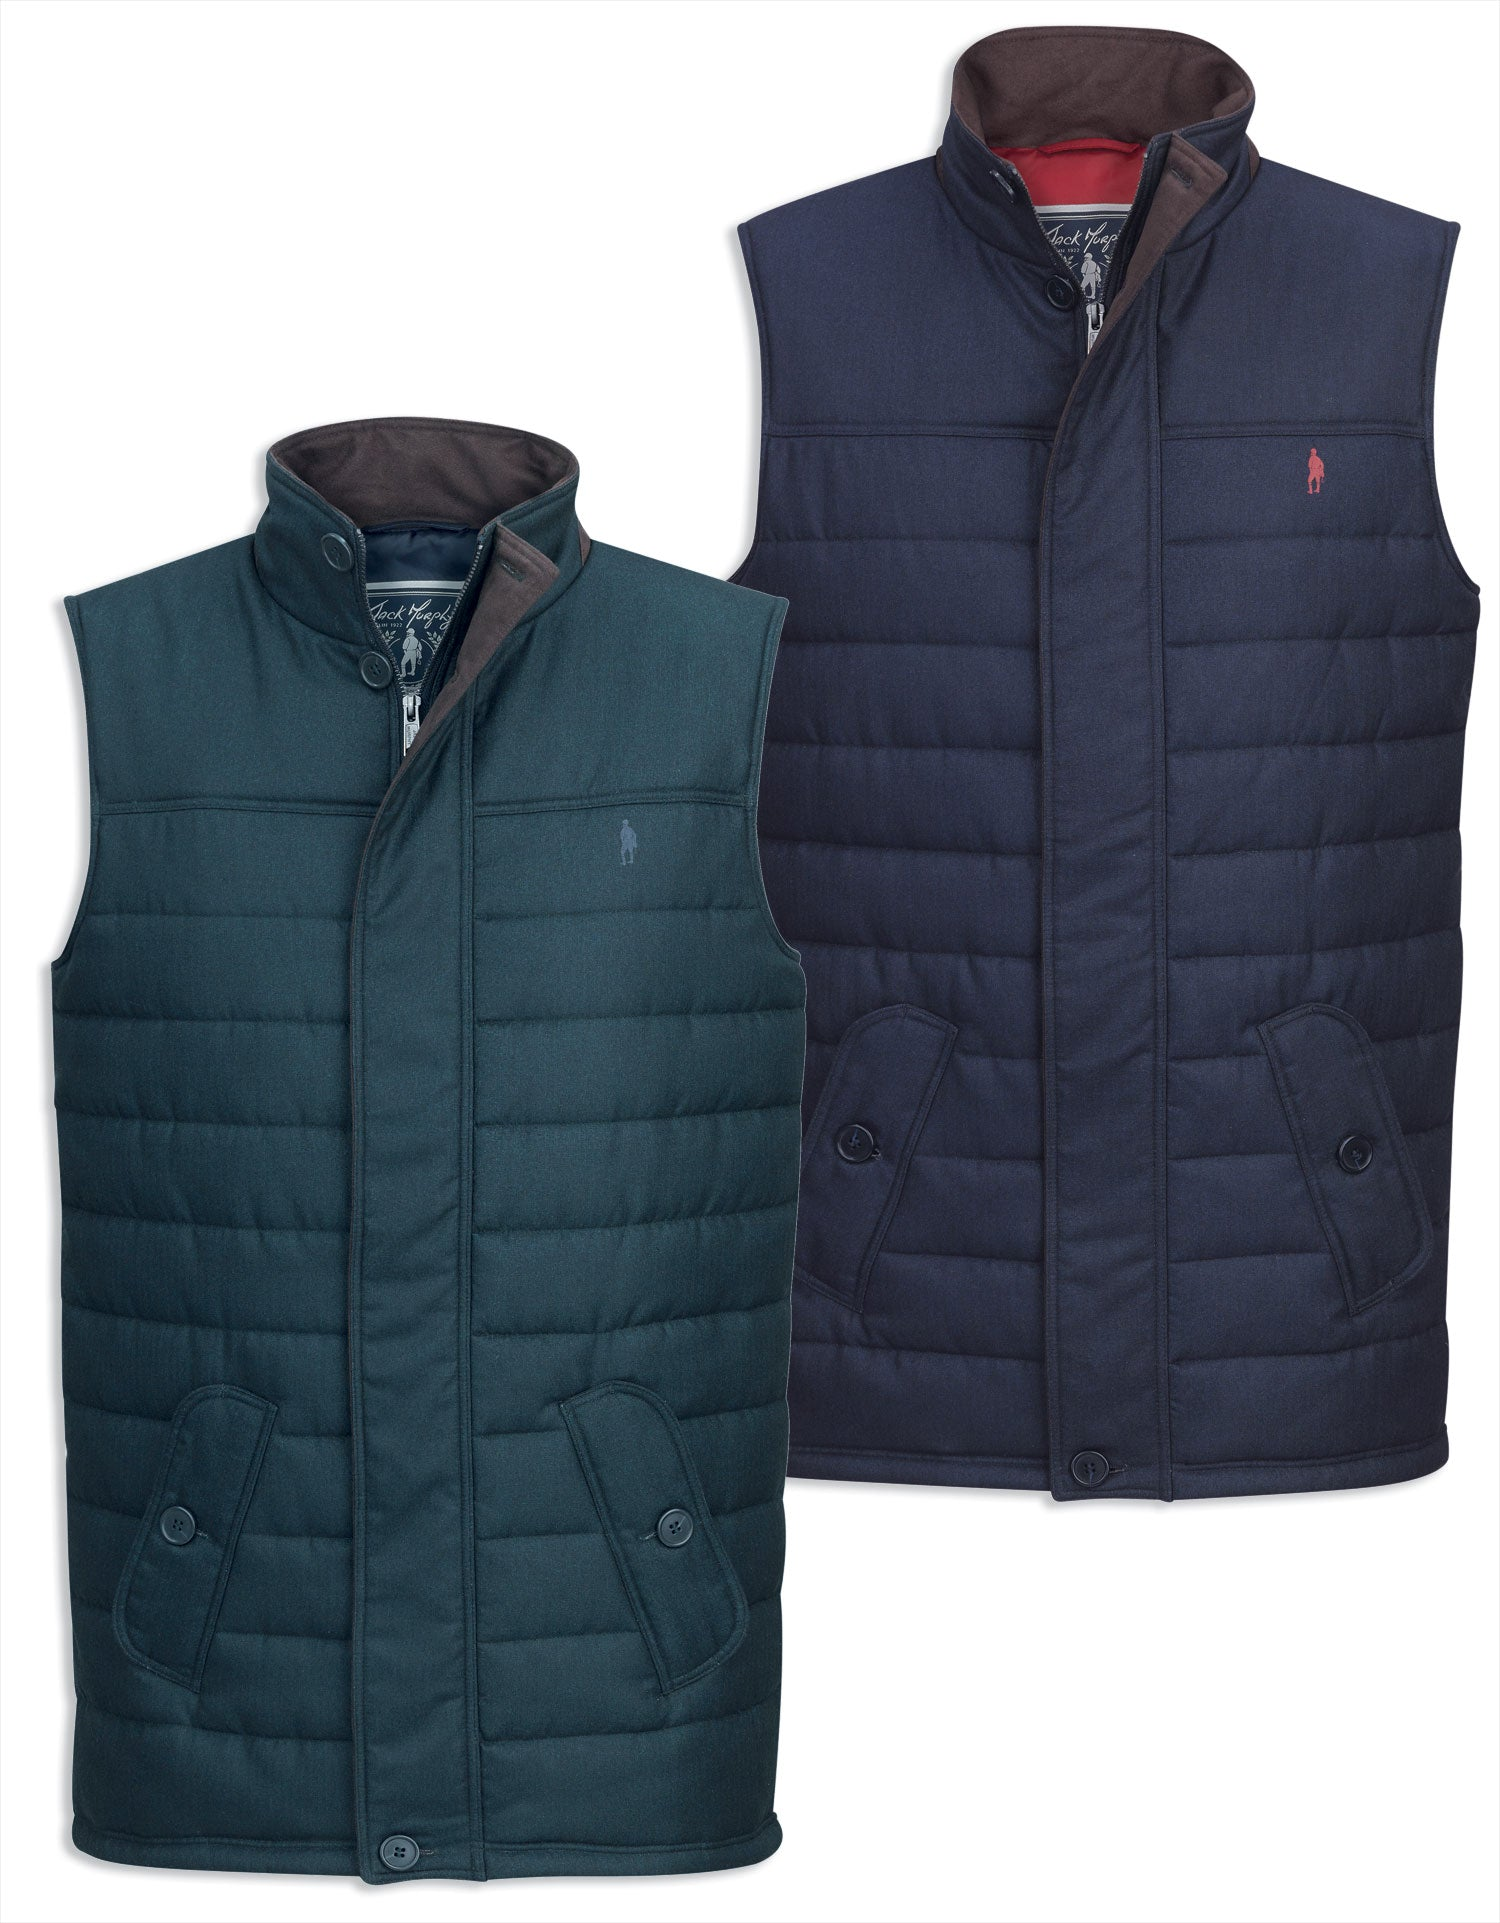 Jack Murphy Norman Quilted Gilet in navy and gren